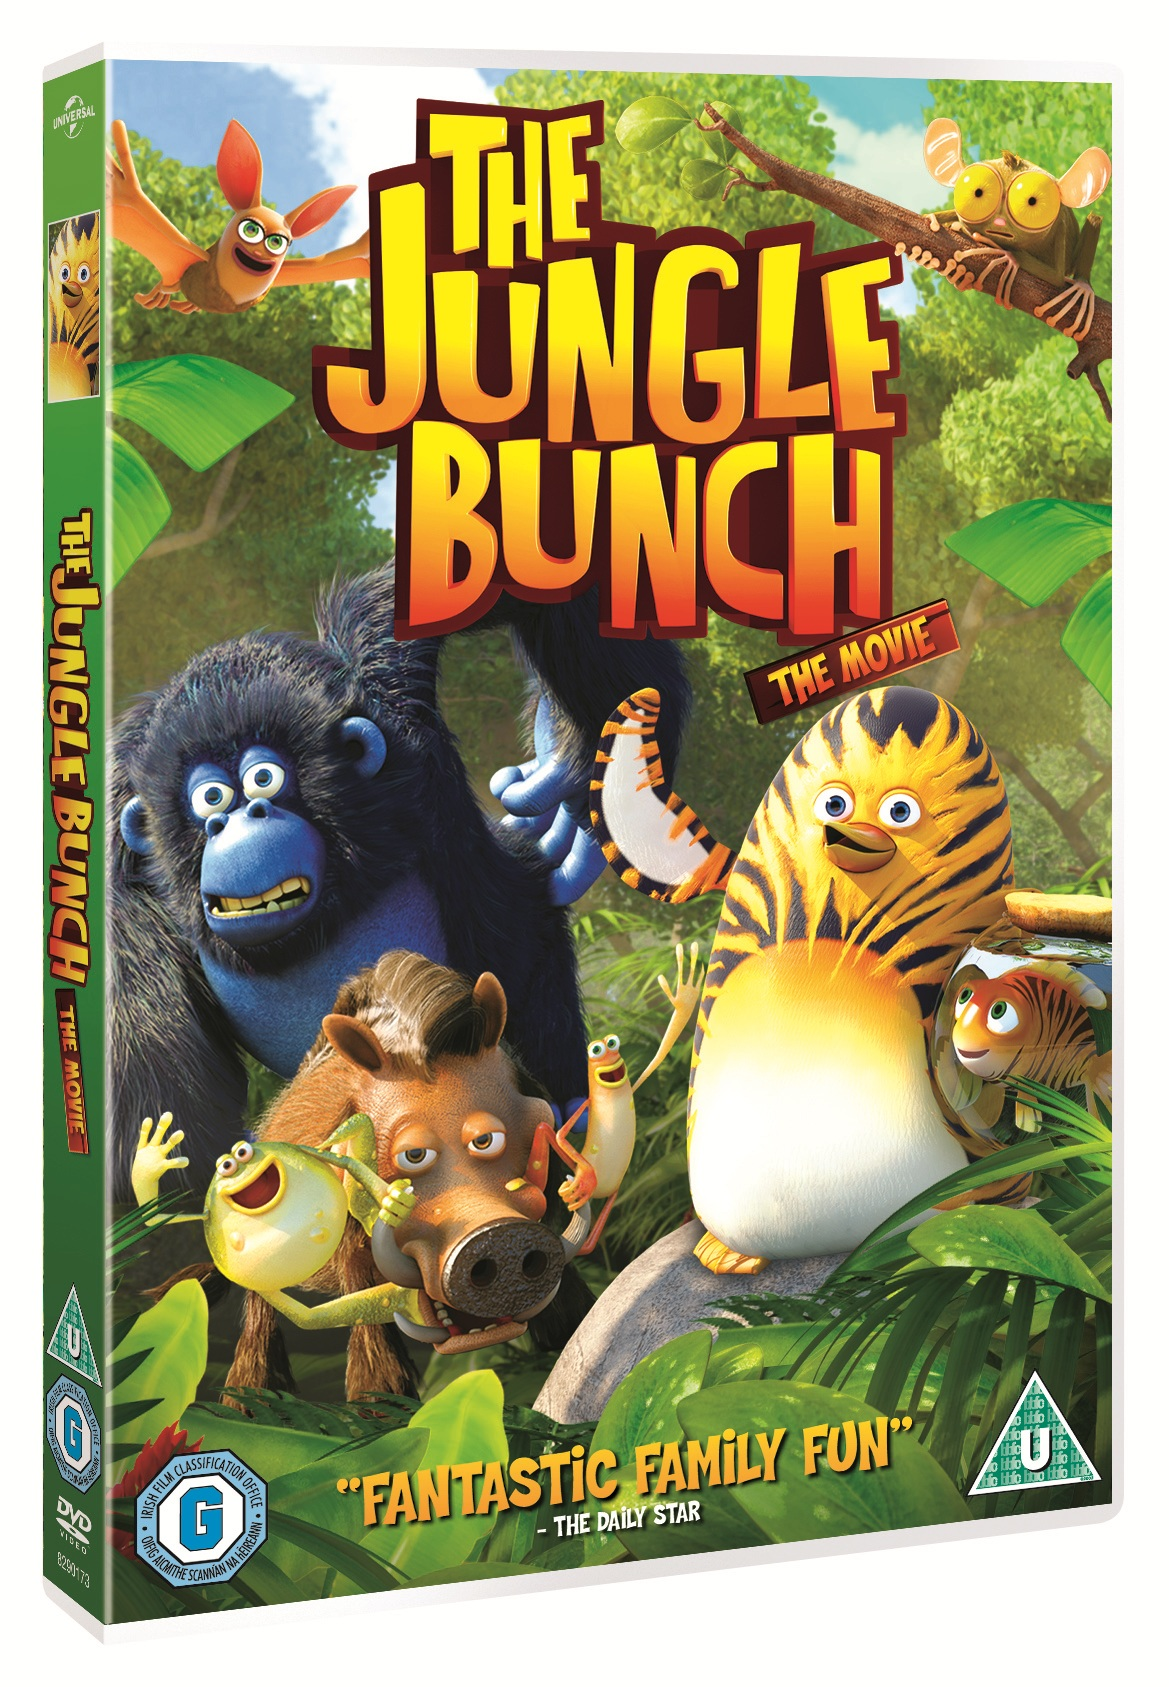 Win 1 of 10 'The Jungle Bunch' DVDs